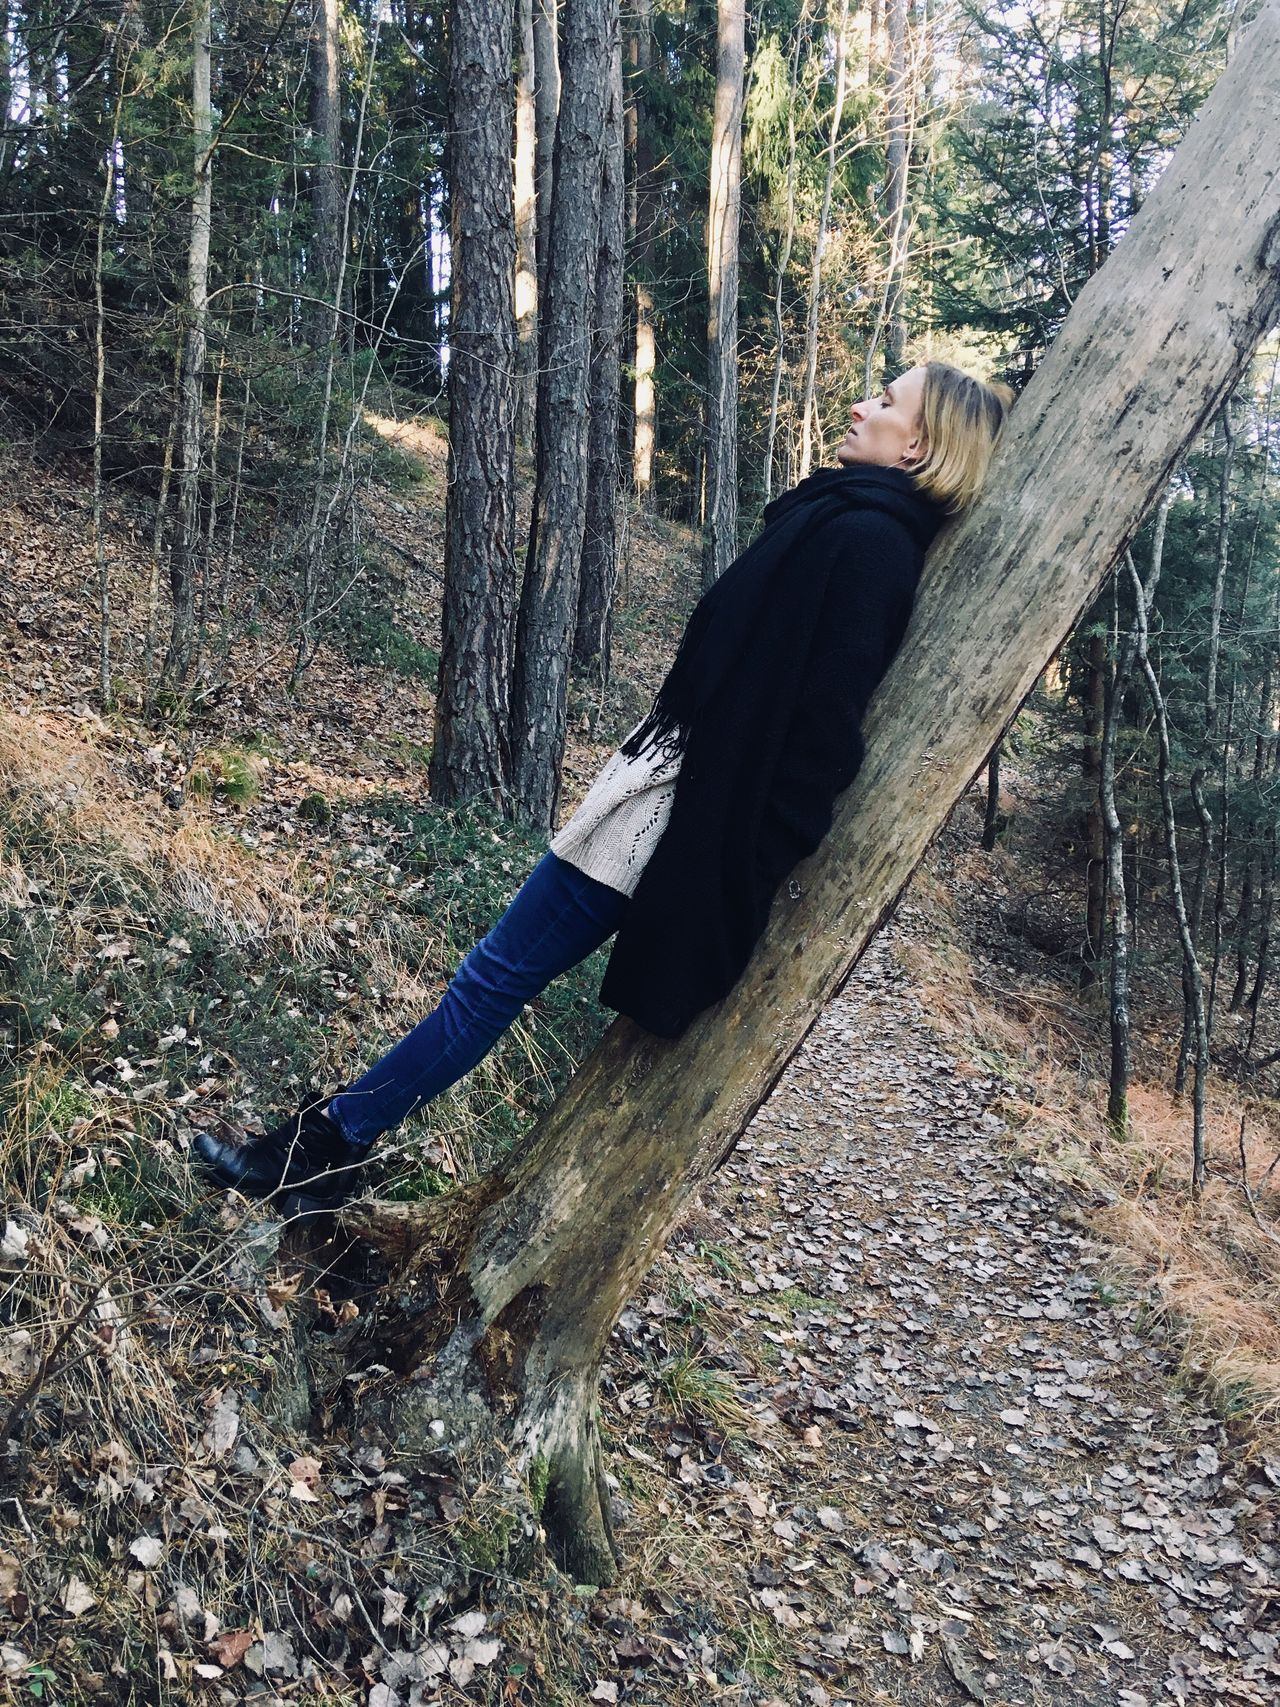 Tree Womaninnature One Person Tree Area Autumn Beauty In Nature Tranquil Scene Nature Womaninblack Magical Moments Magical Trees Magicmoment Warm Clothing Young Women Outdoors Standing Casual Clothing Real People Magic Hour Forest